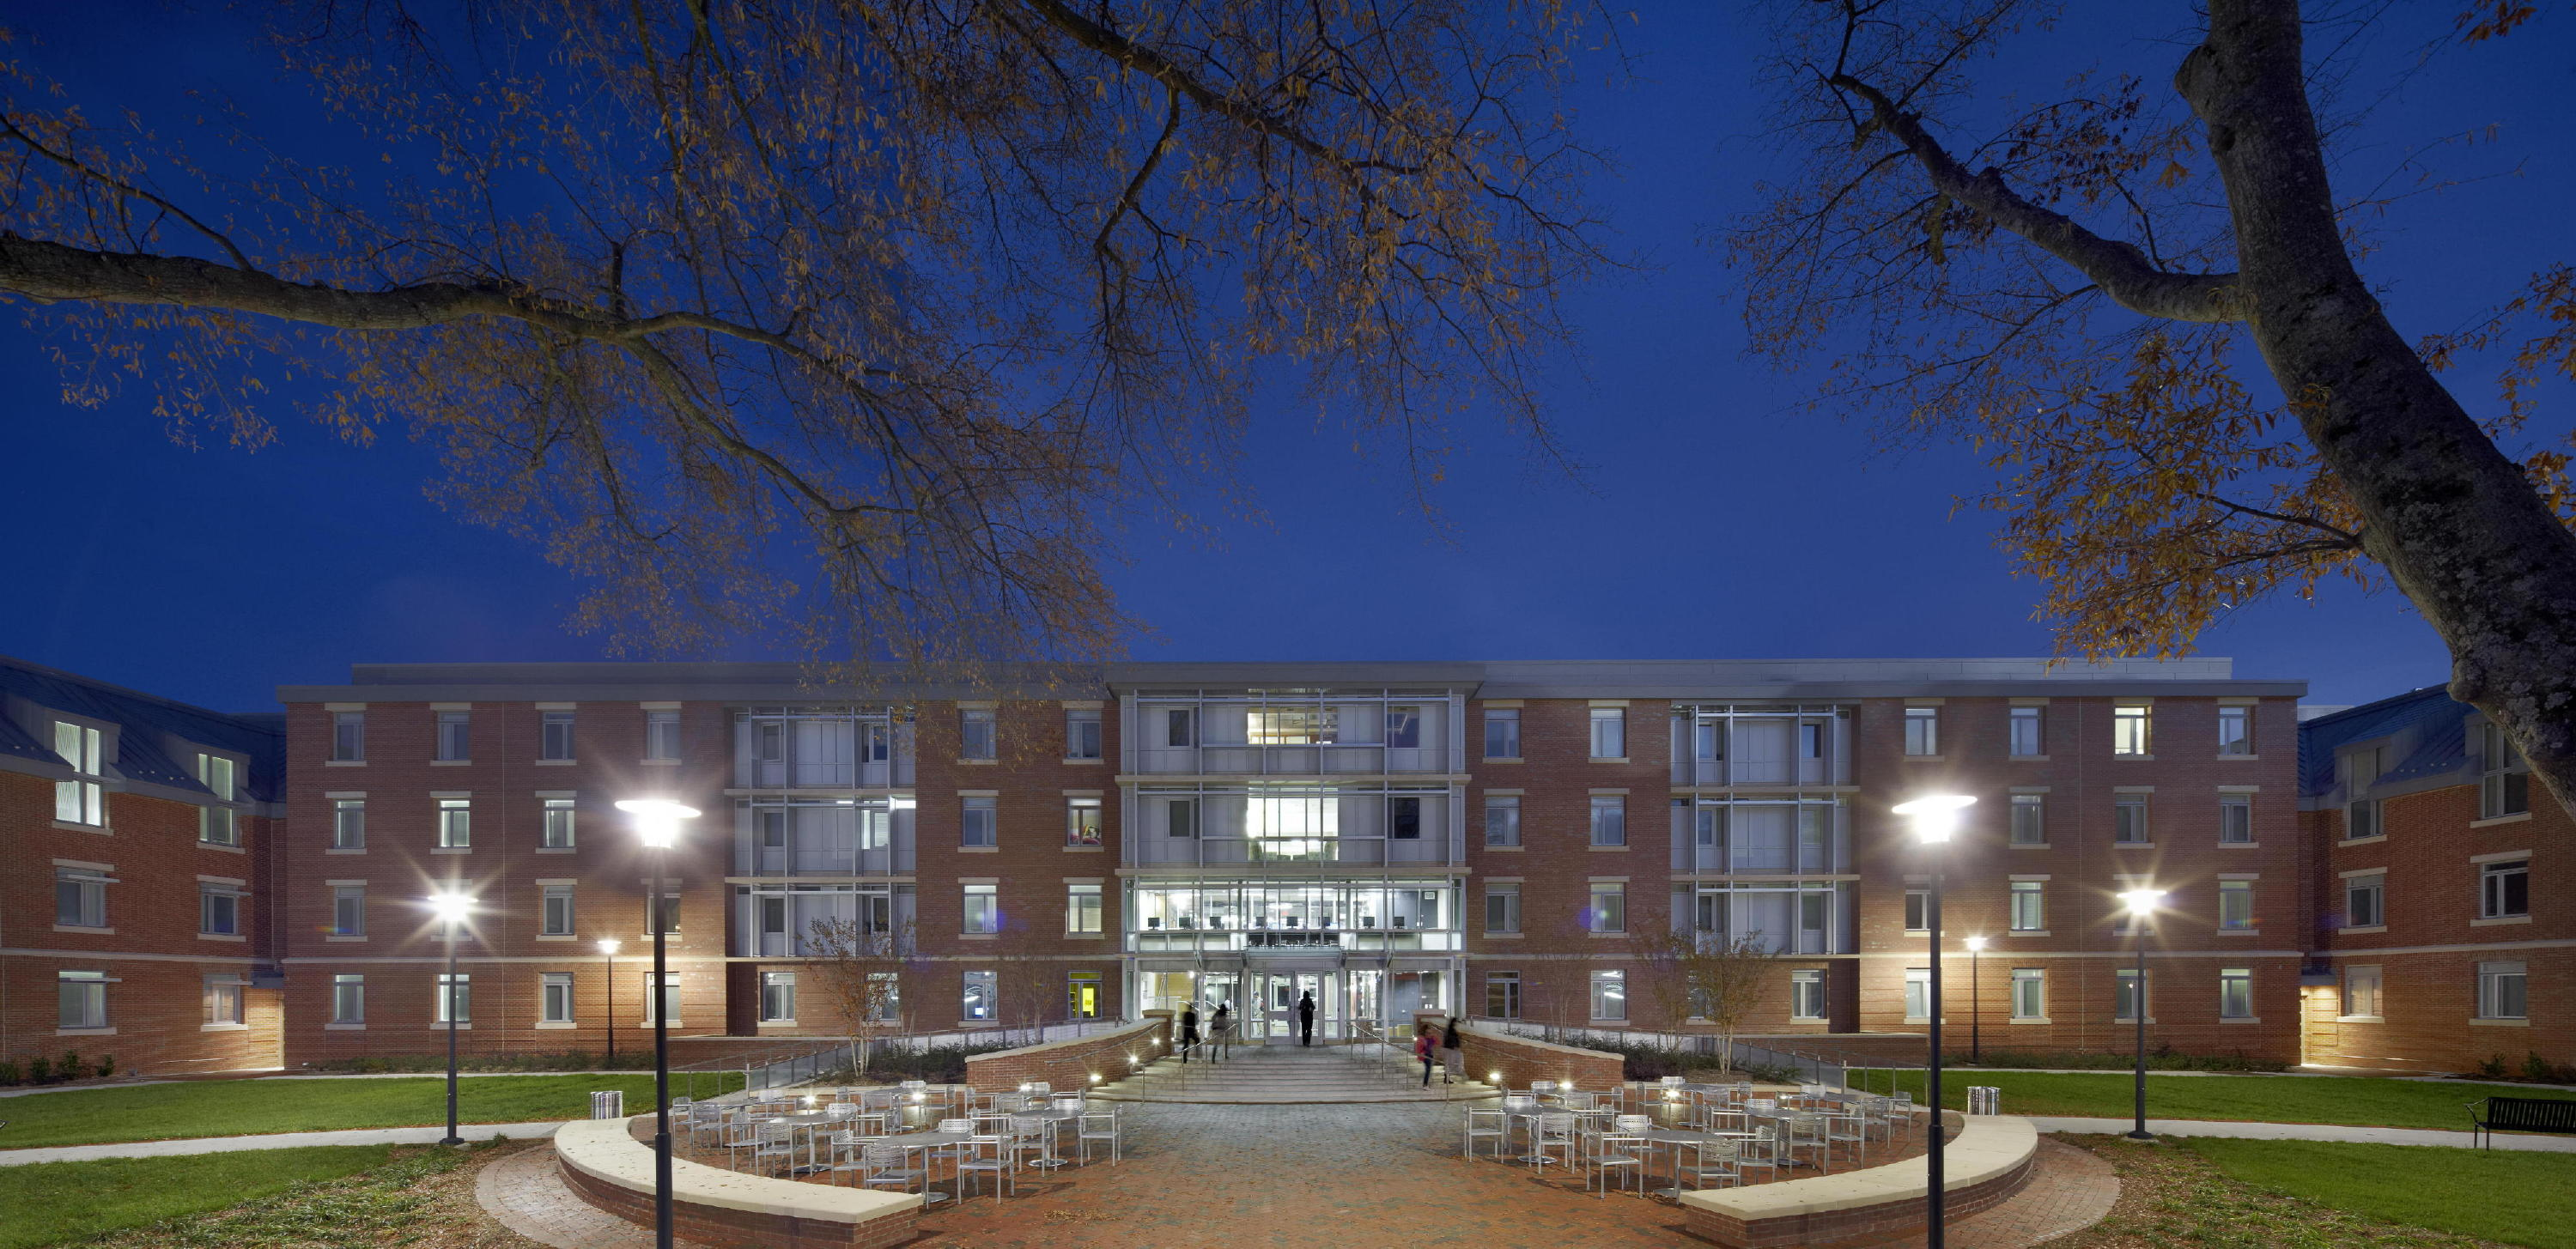 Chidley North Residence Hall at NCCU is a C-shaped structure. The building's inner exterior façade faces the university's Chidley Main Residence Hall, forming a courtyard used by students for relaxation, group activities and studying. c James West /JWest Productions